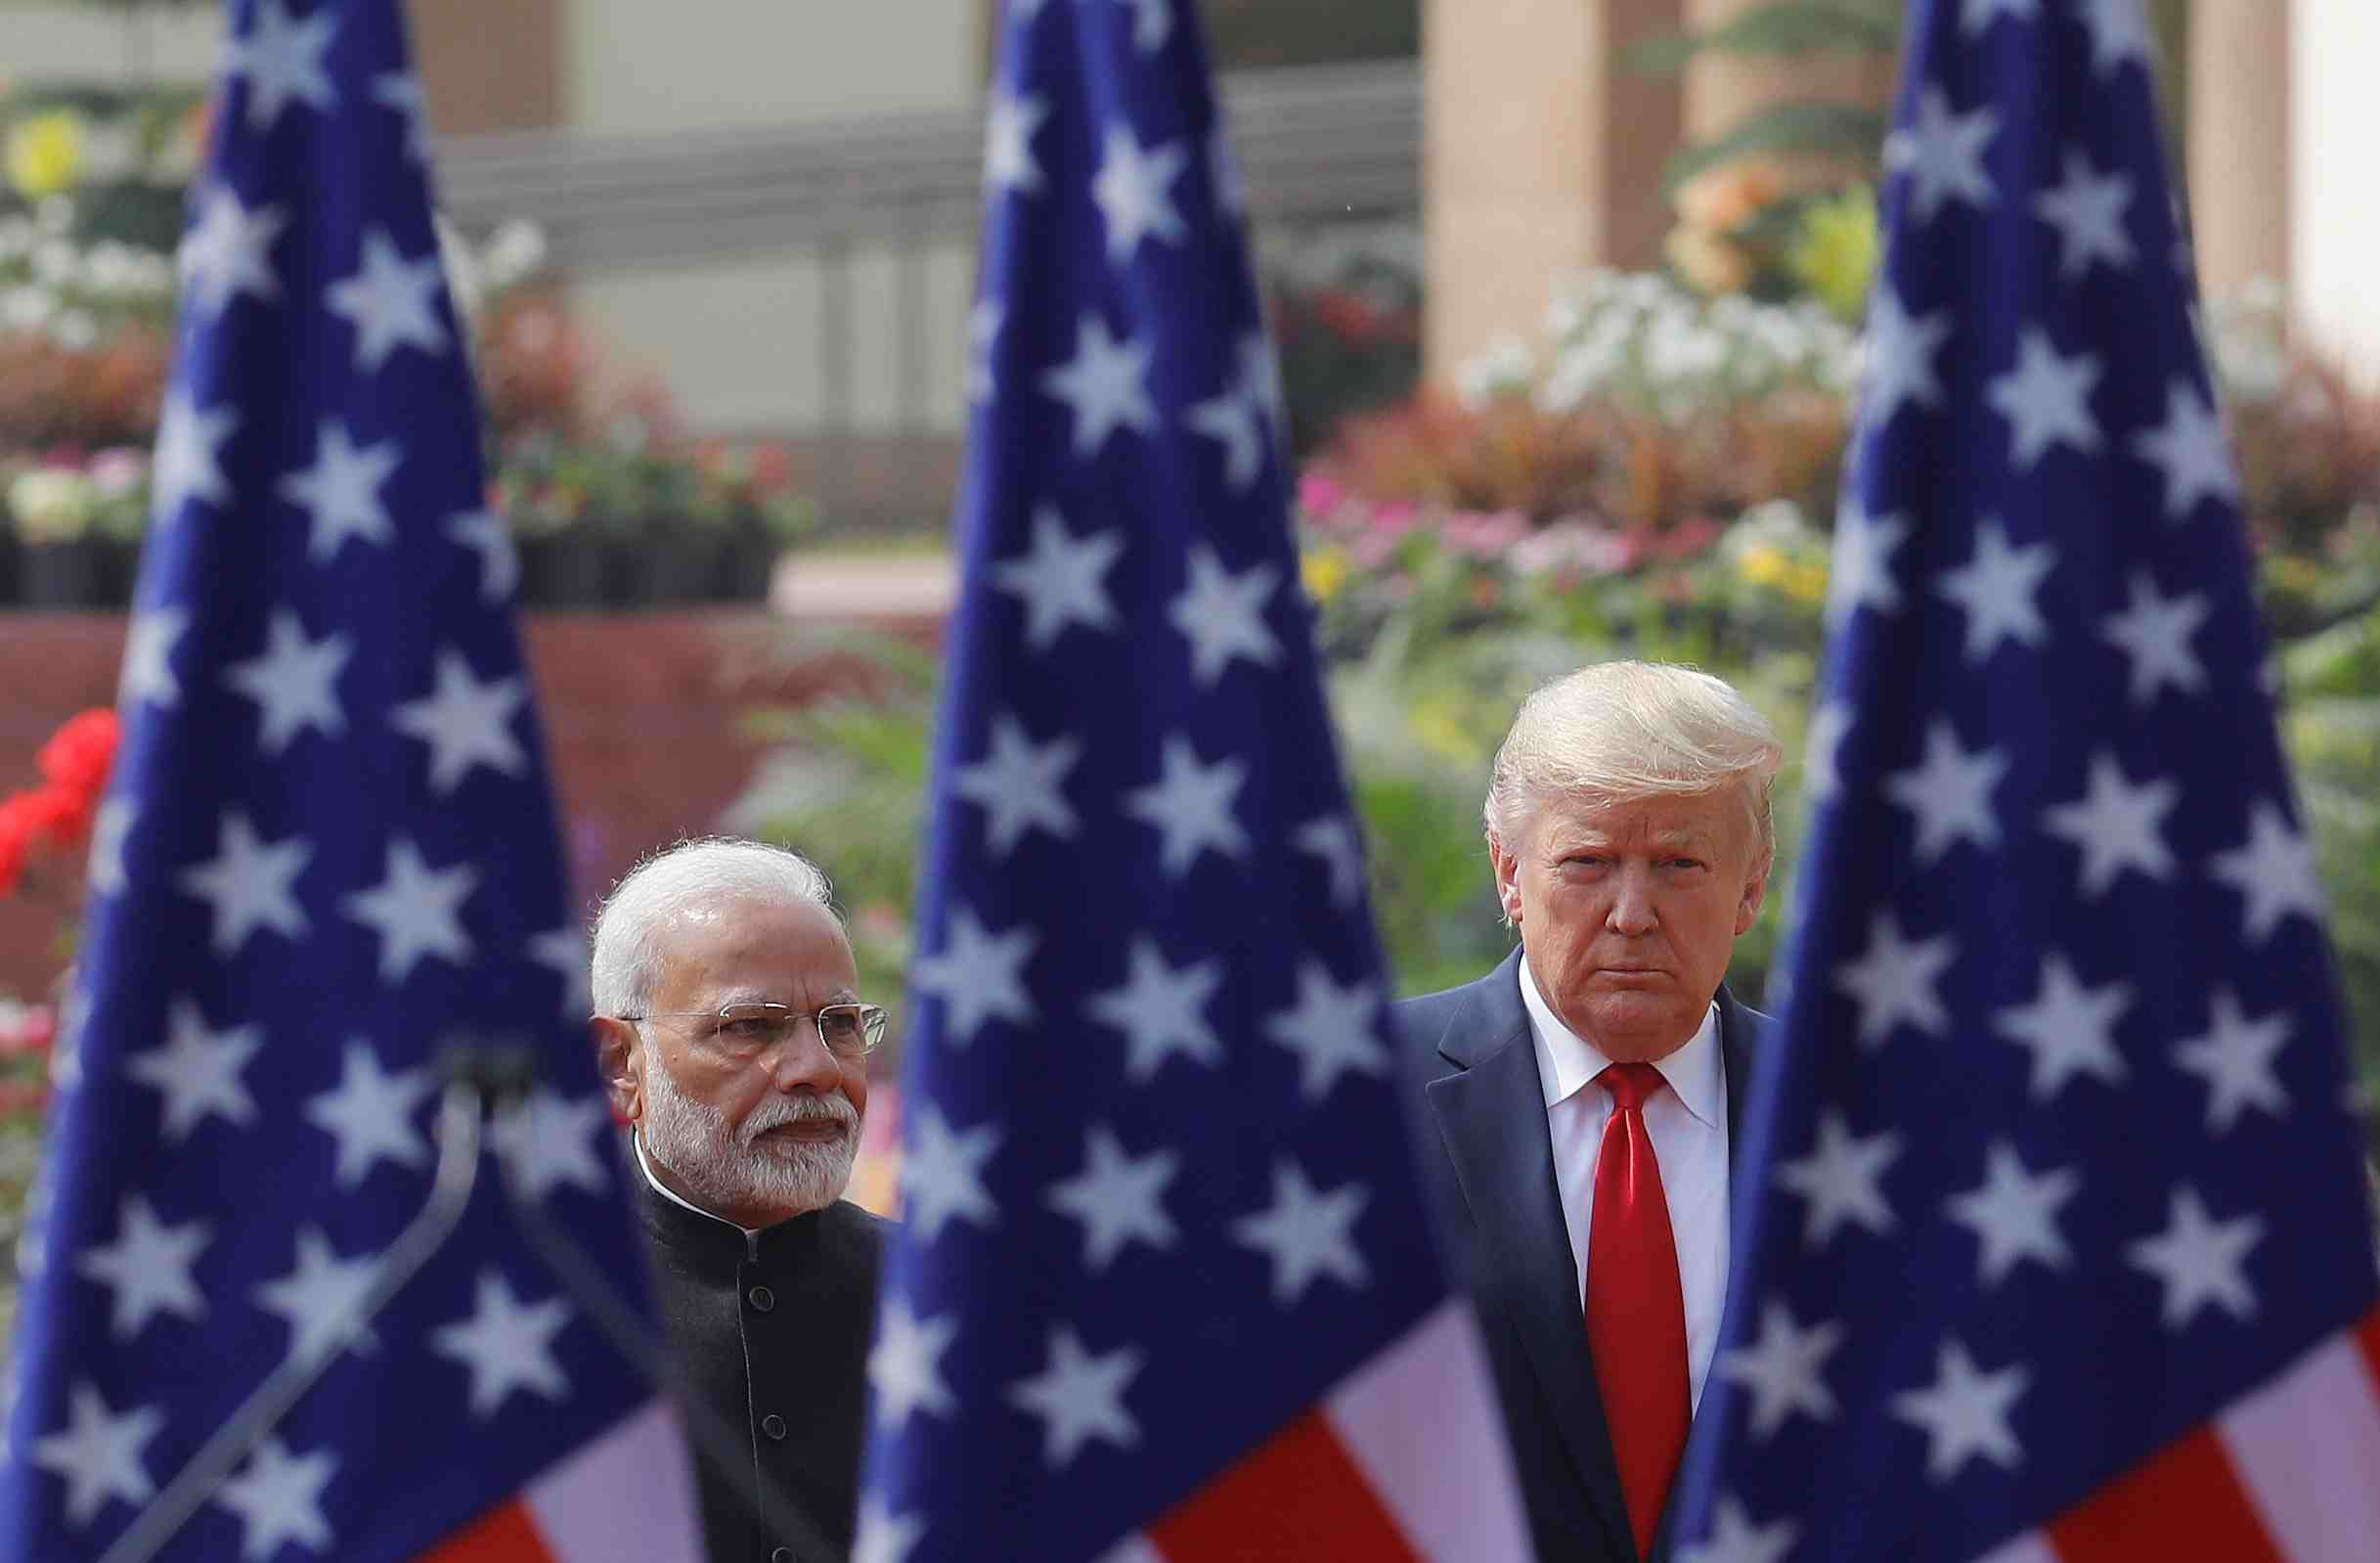 U.S. President Donald Trump and India's Prime Minister Narendra Modi arrive for their joint news conference at Hyderabad House in New Delhi